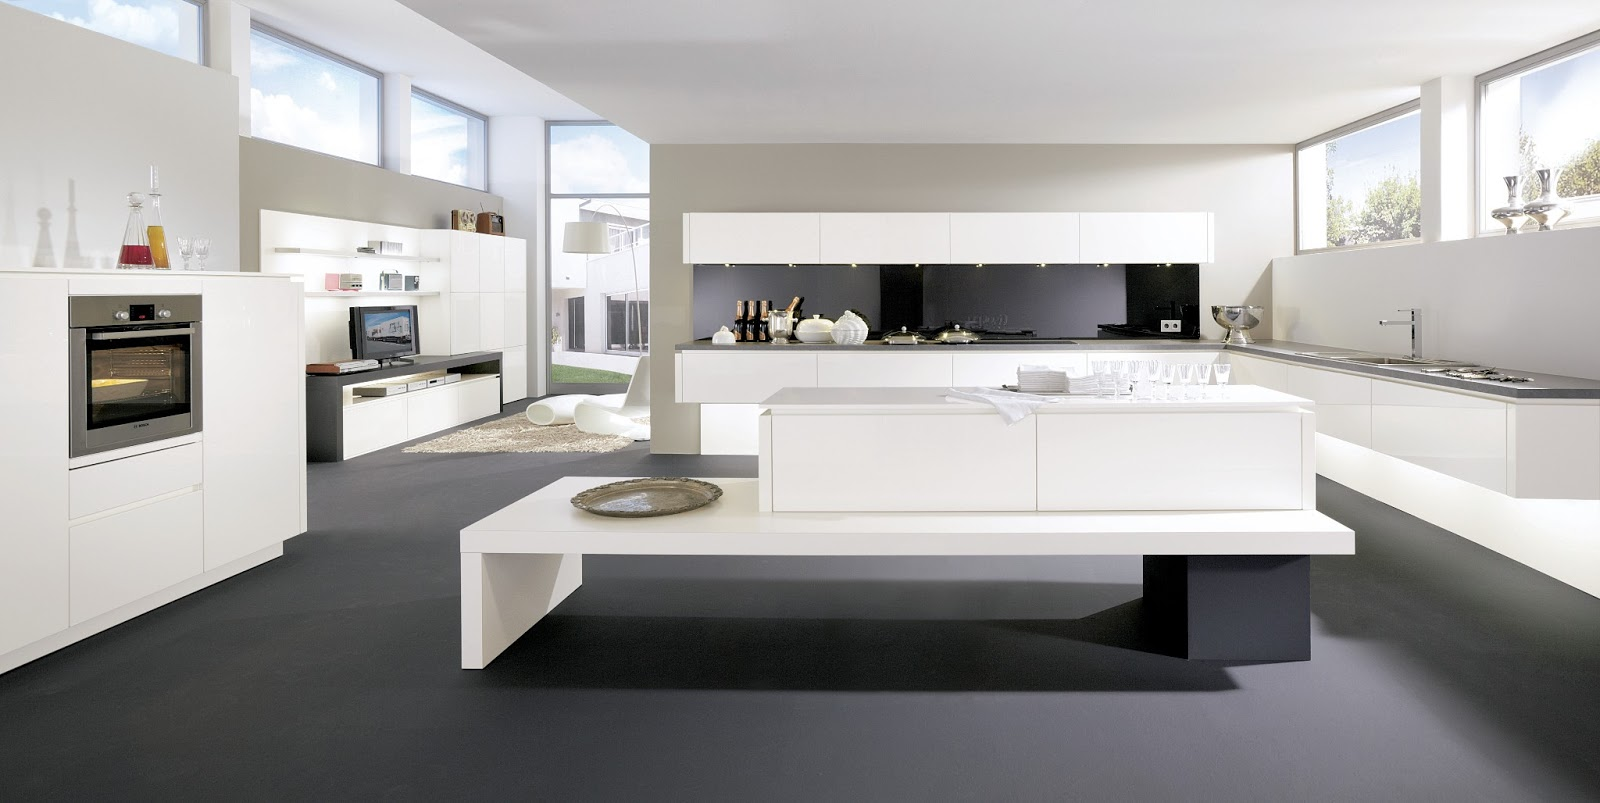 cuisine ouverte. Black Bedroom Furniture Sets. Home Design Ideas